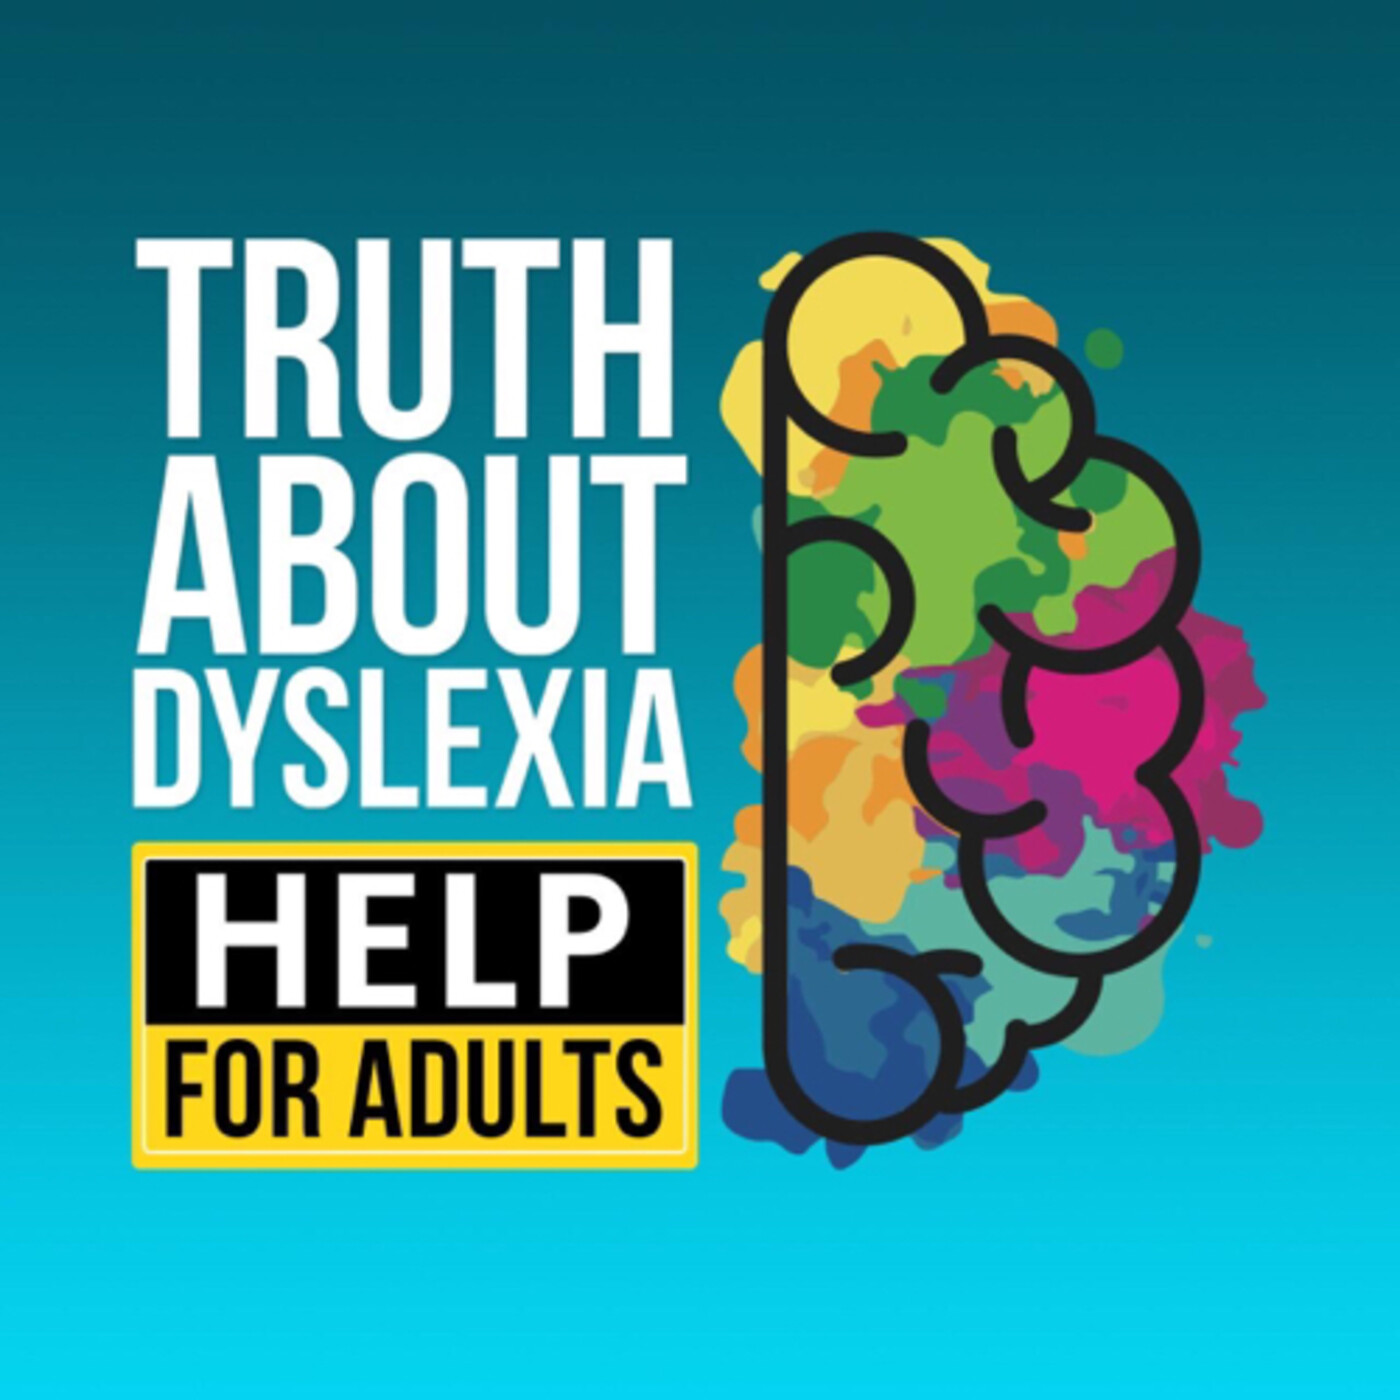 How can you help other dyslexics?